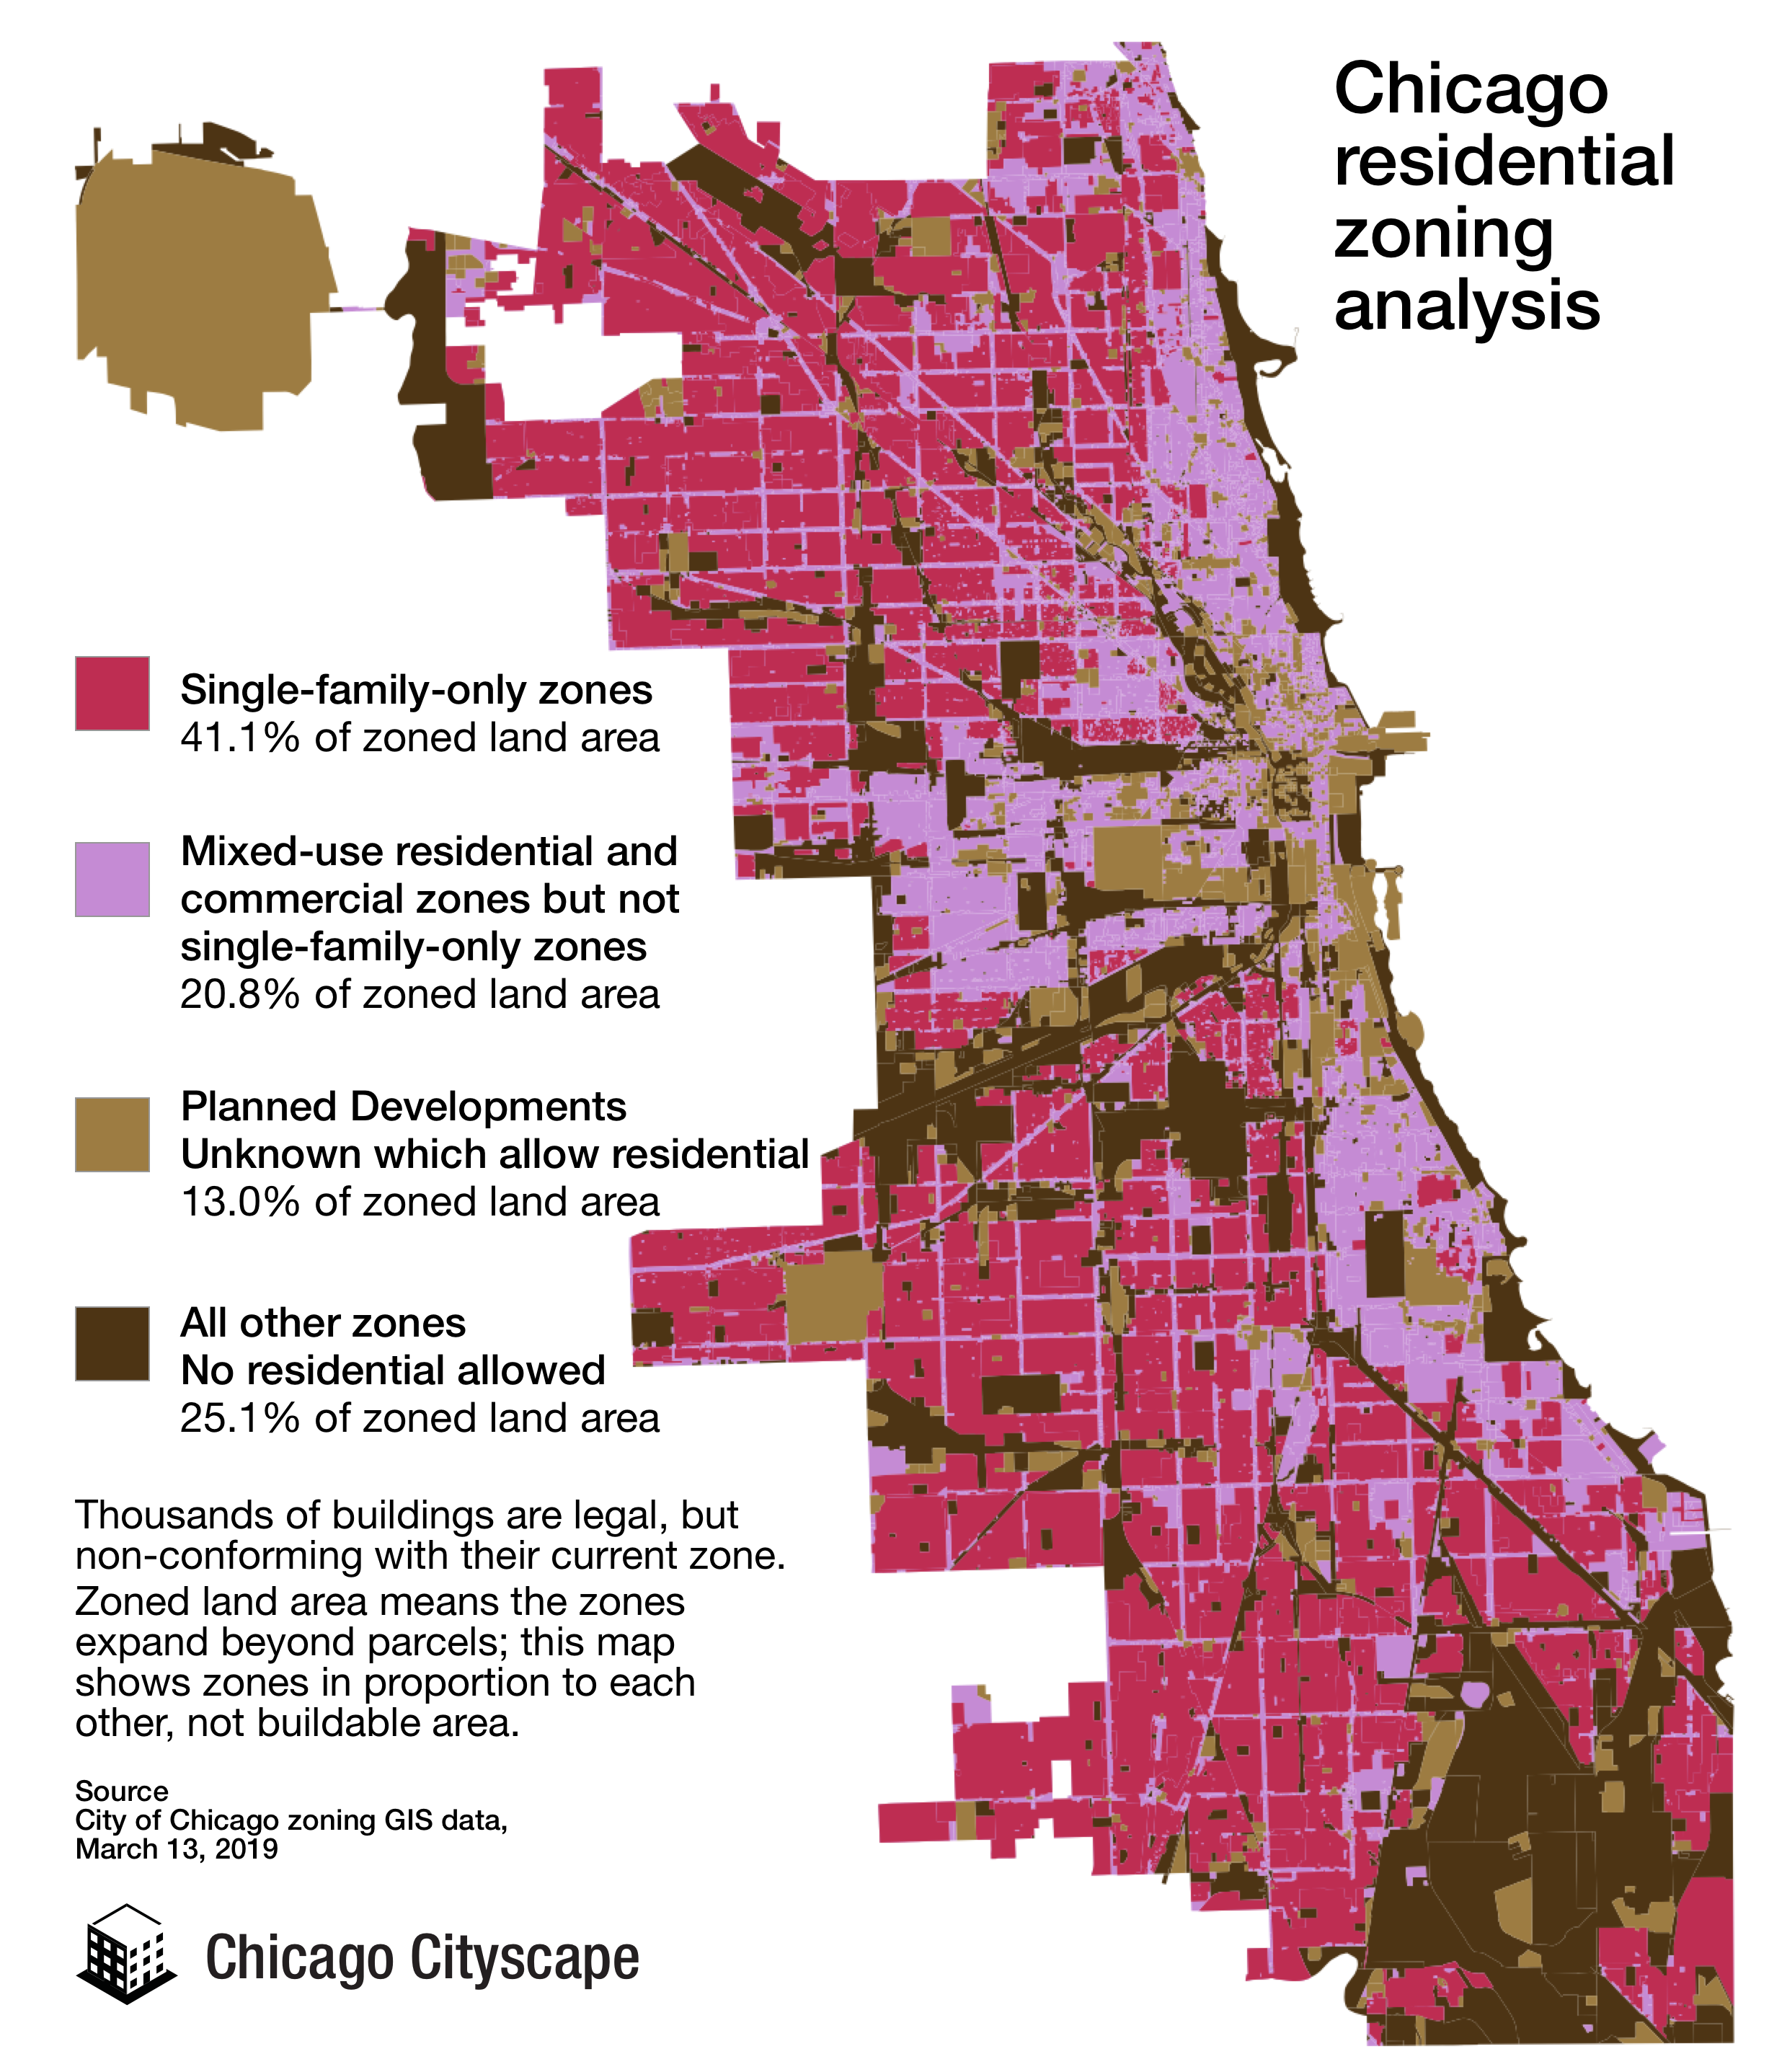 Apartments & condos are banned in most of Chicago - Chicago ... on chicago attraction map interactive click, chicago cemetery map, chicago zones, chicago residential parking permit, chicago and surrounding suburbs maps, chicago municipal code, chicago temperature map, chicago arcology map, chicago permit parking map, chicago annexation map, chicago budget, chicago street index, chicago topography map, chicago construction map, chicago submarket map, denver rtd light rail route map, a long way from chicago map, chicago metra system map, chicago zip code map printable, chicago watershed map,